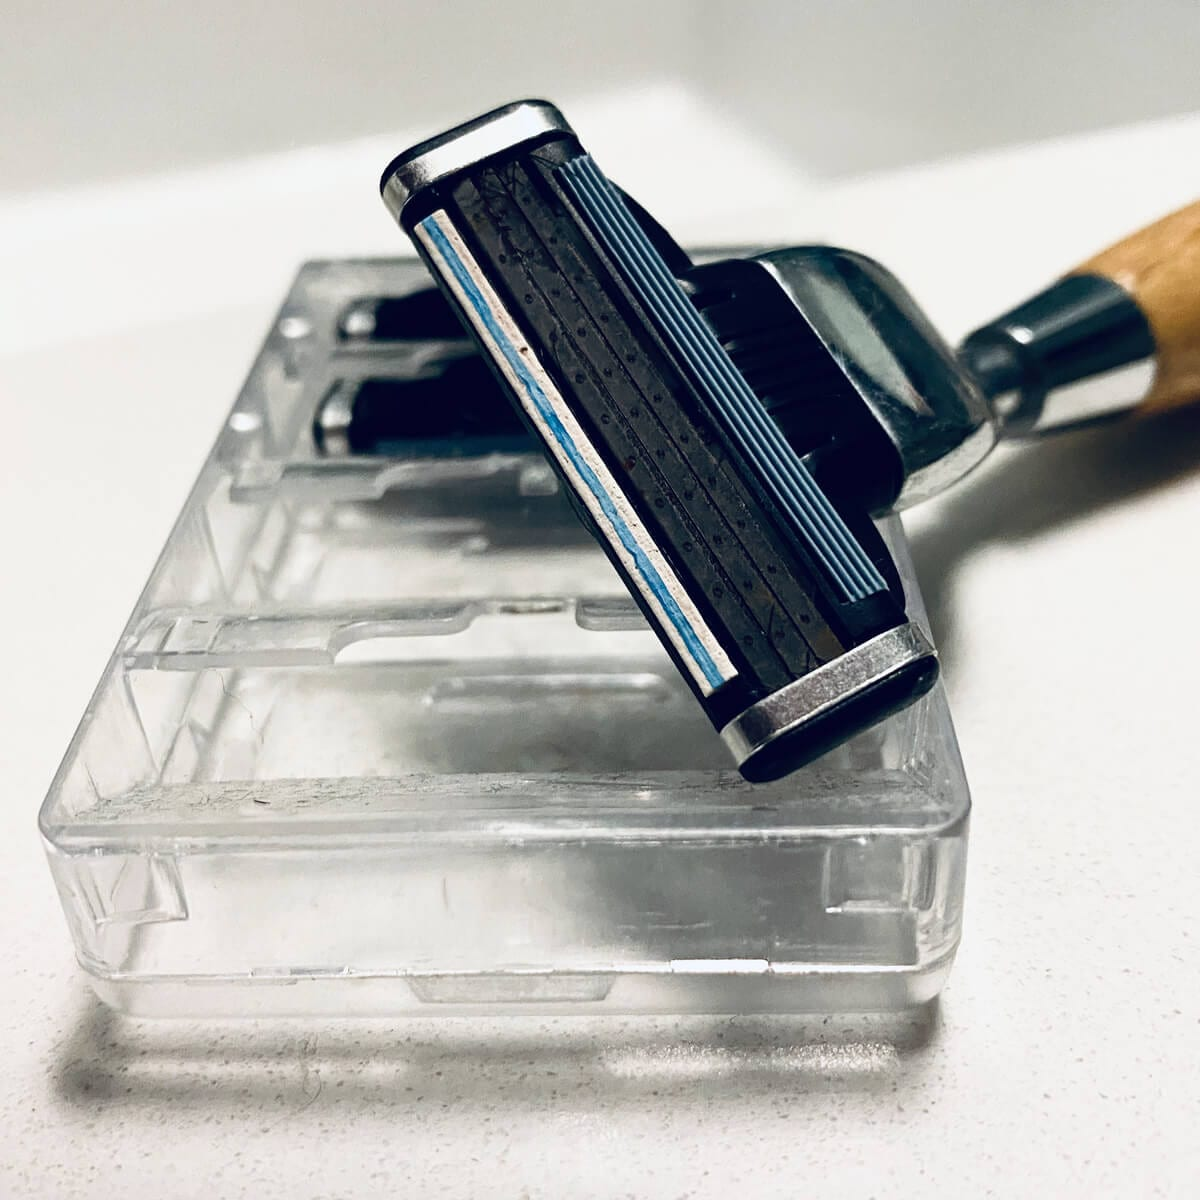 How to Sharpen Razor Blades in 3 Simple Steps